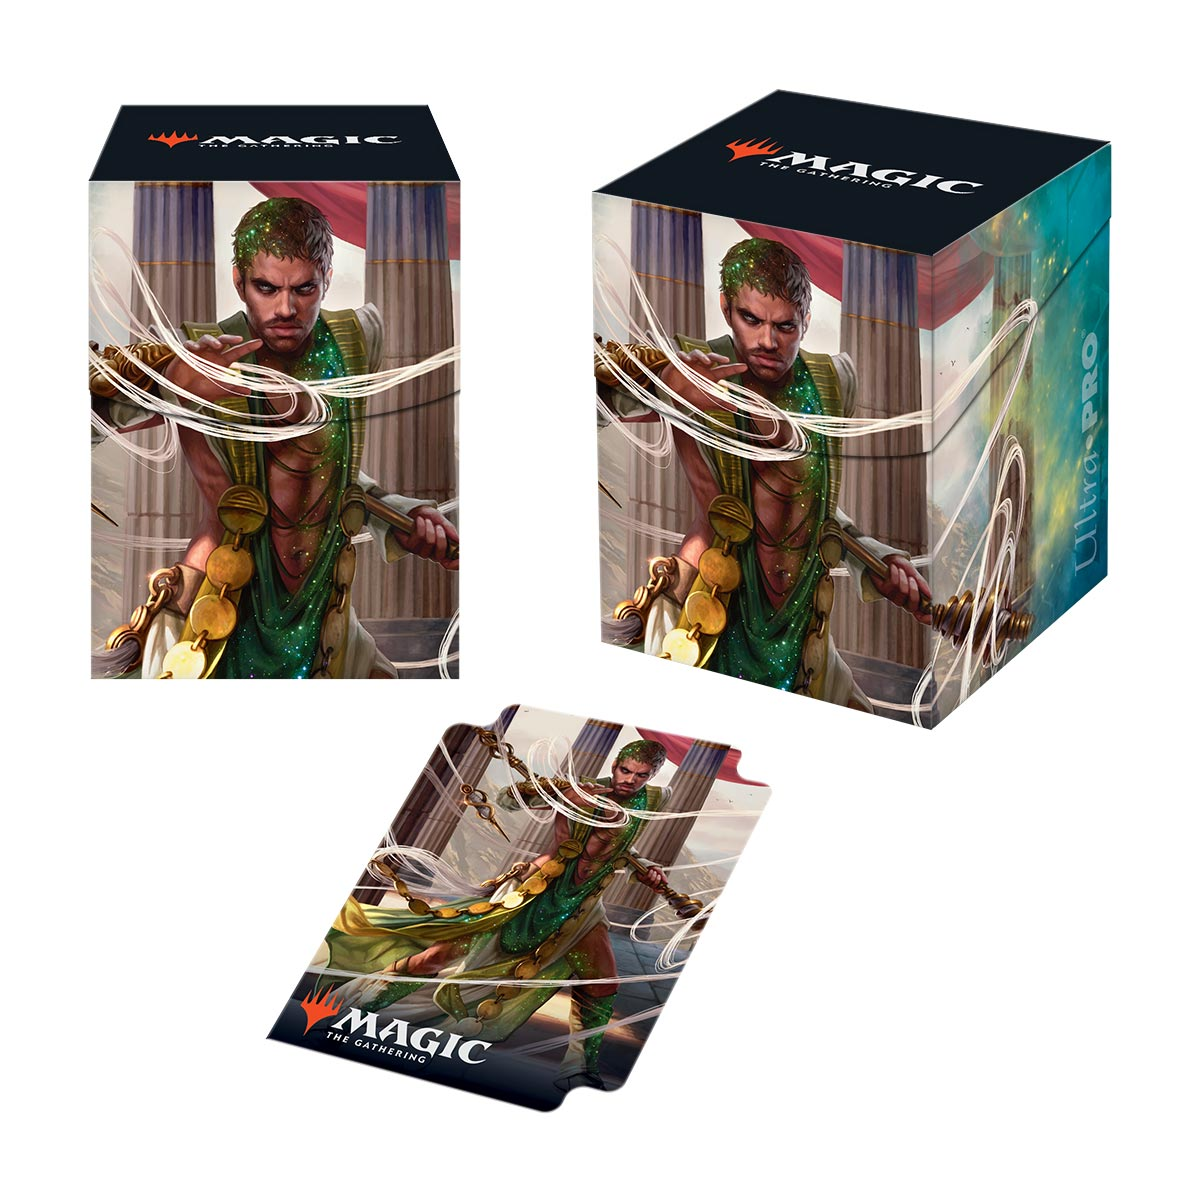 Theros Beyond Death Calix, Destinys Hand PRO 100+ Deck Box for Magic: The Gathering